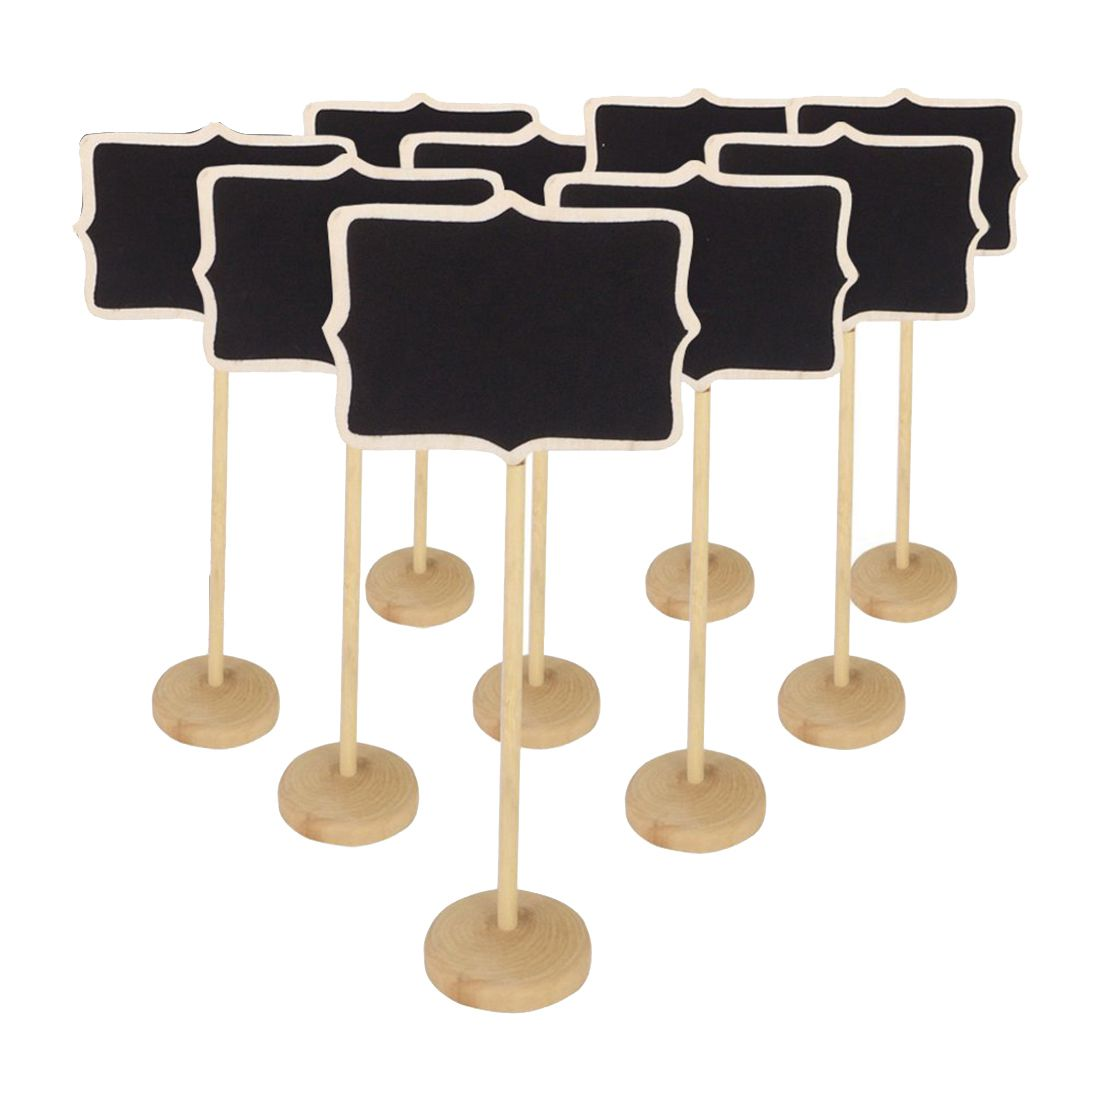 MINI Blackboard Chalkboard Wooden Message Board Holder With Stand For Party Wedding Table Number/place Card Setting Decoration